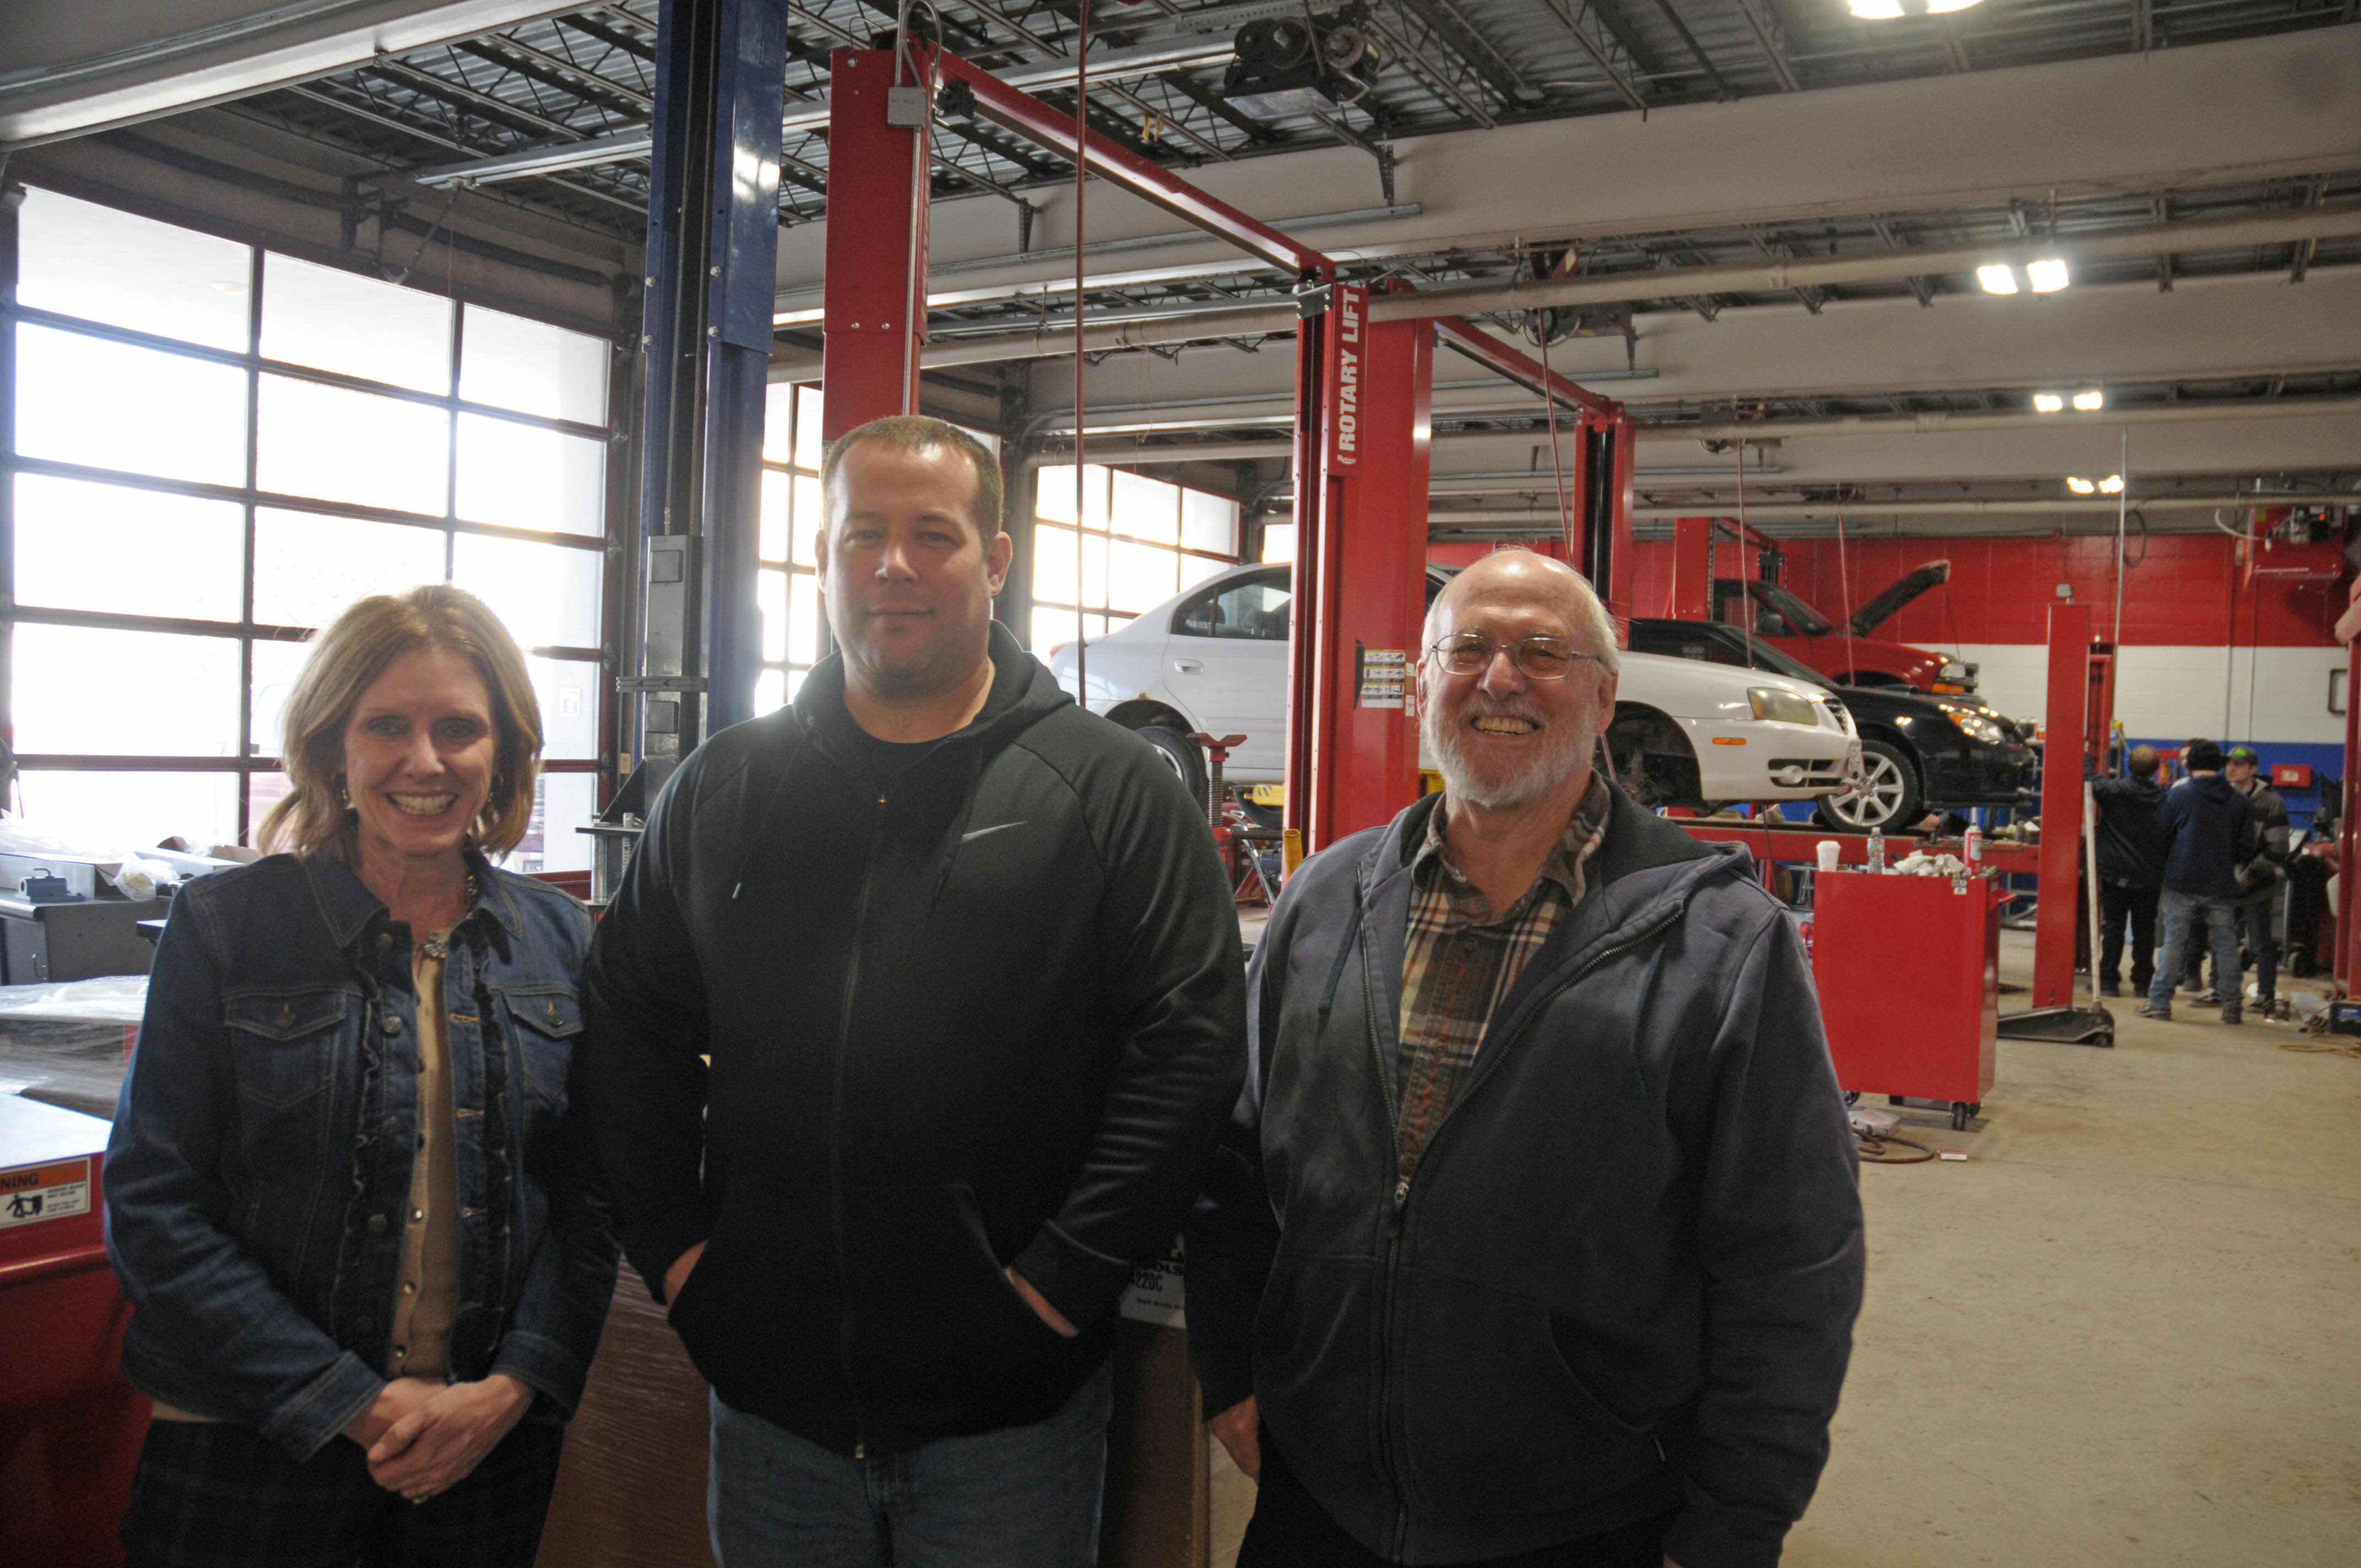 Three people stand in a row in an automotive repair area.